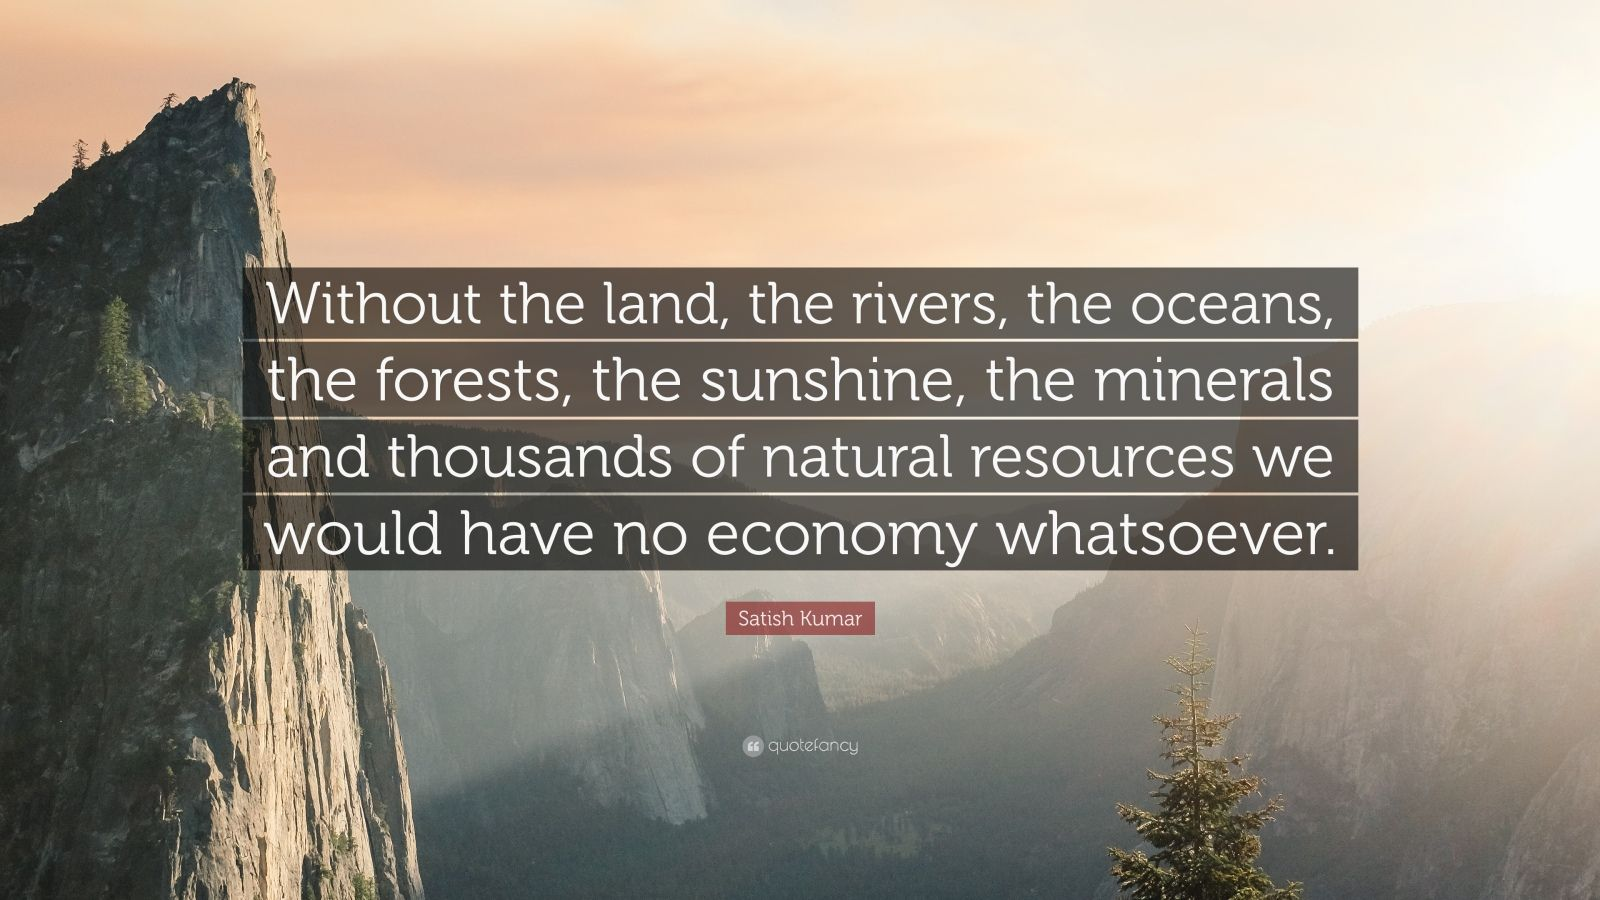 """Satish Kumar Quote: """"Without the land, the rivers, the oceans, the forests, the sunshine, the minerals and thousands of natural resources we would have no economy whatsoever."""""""